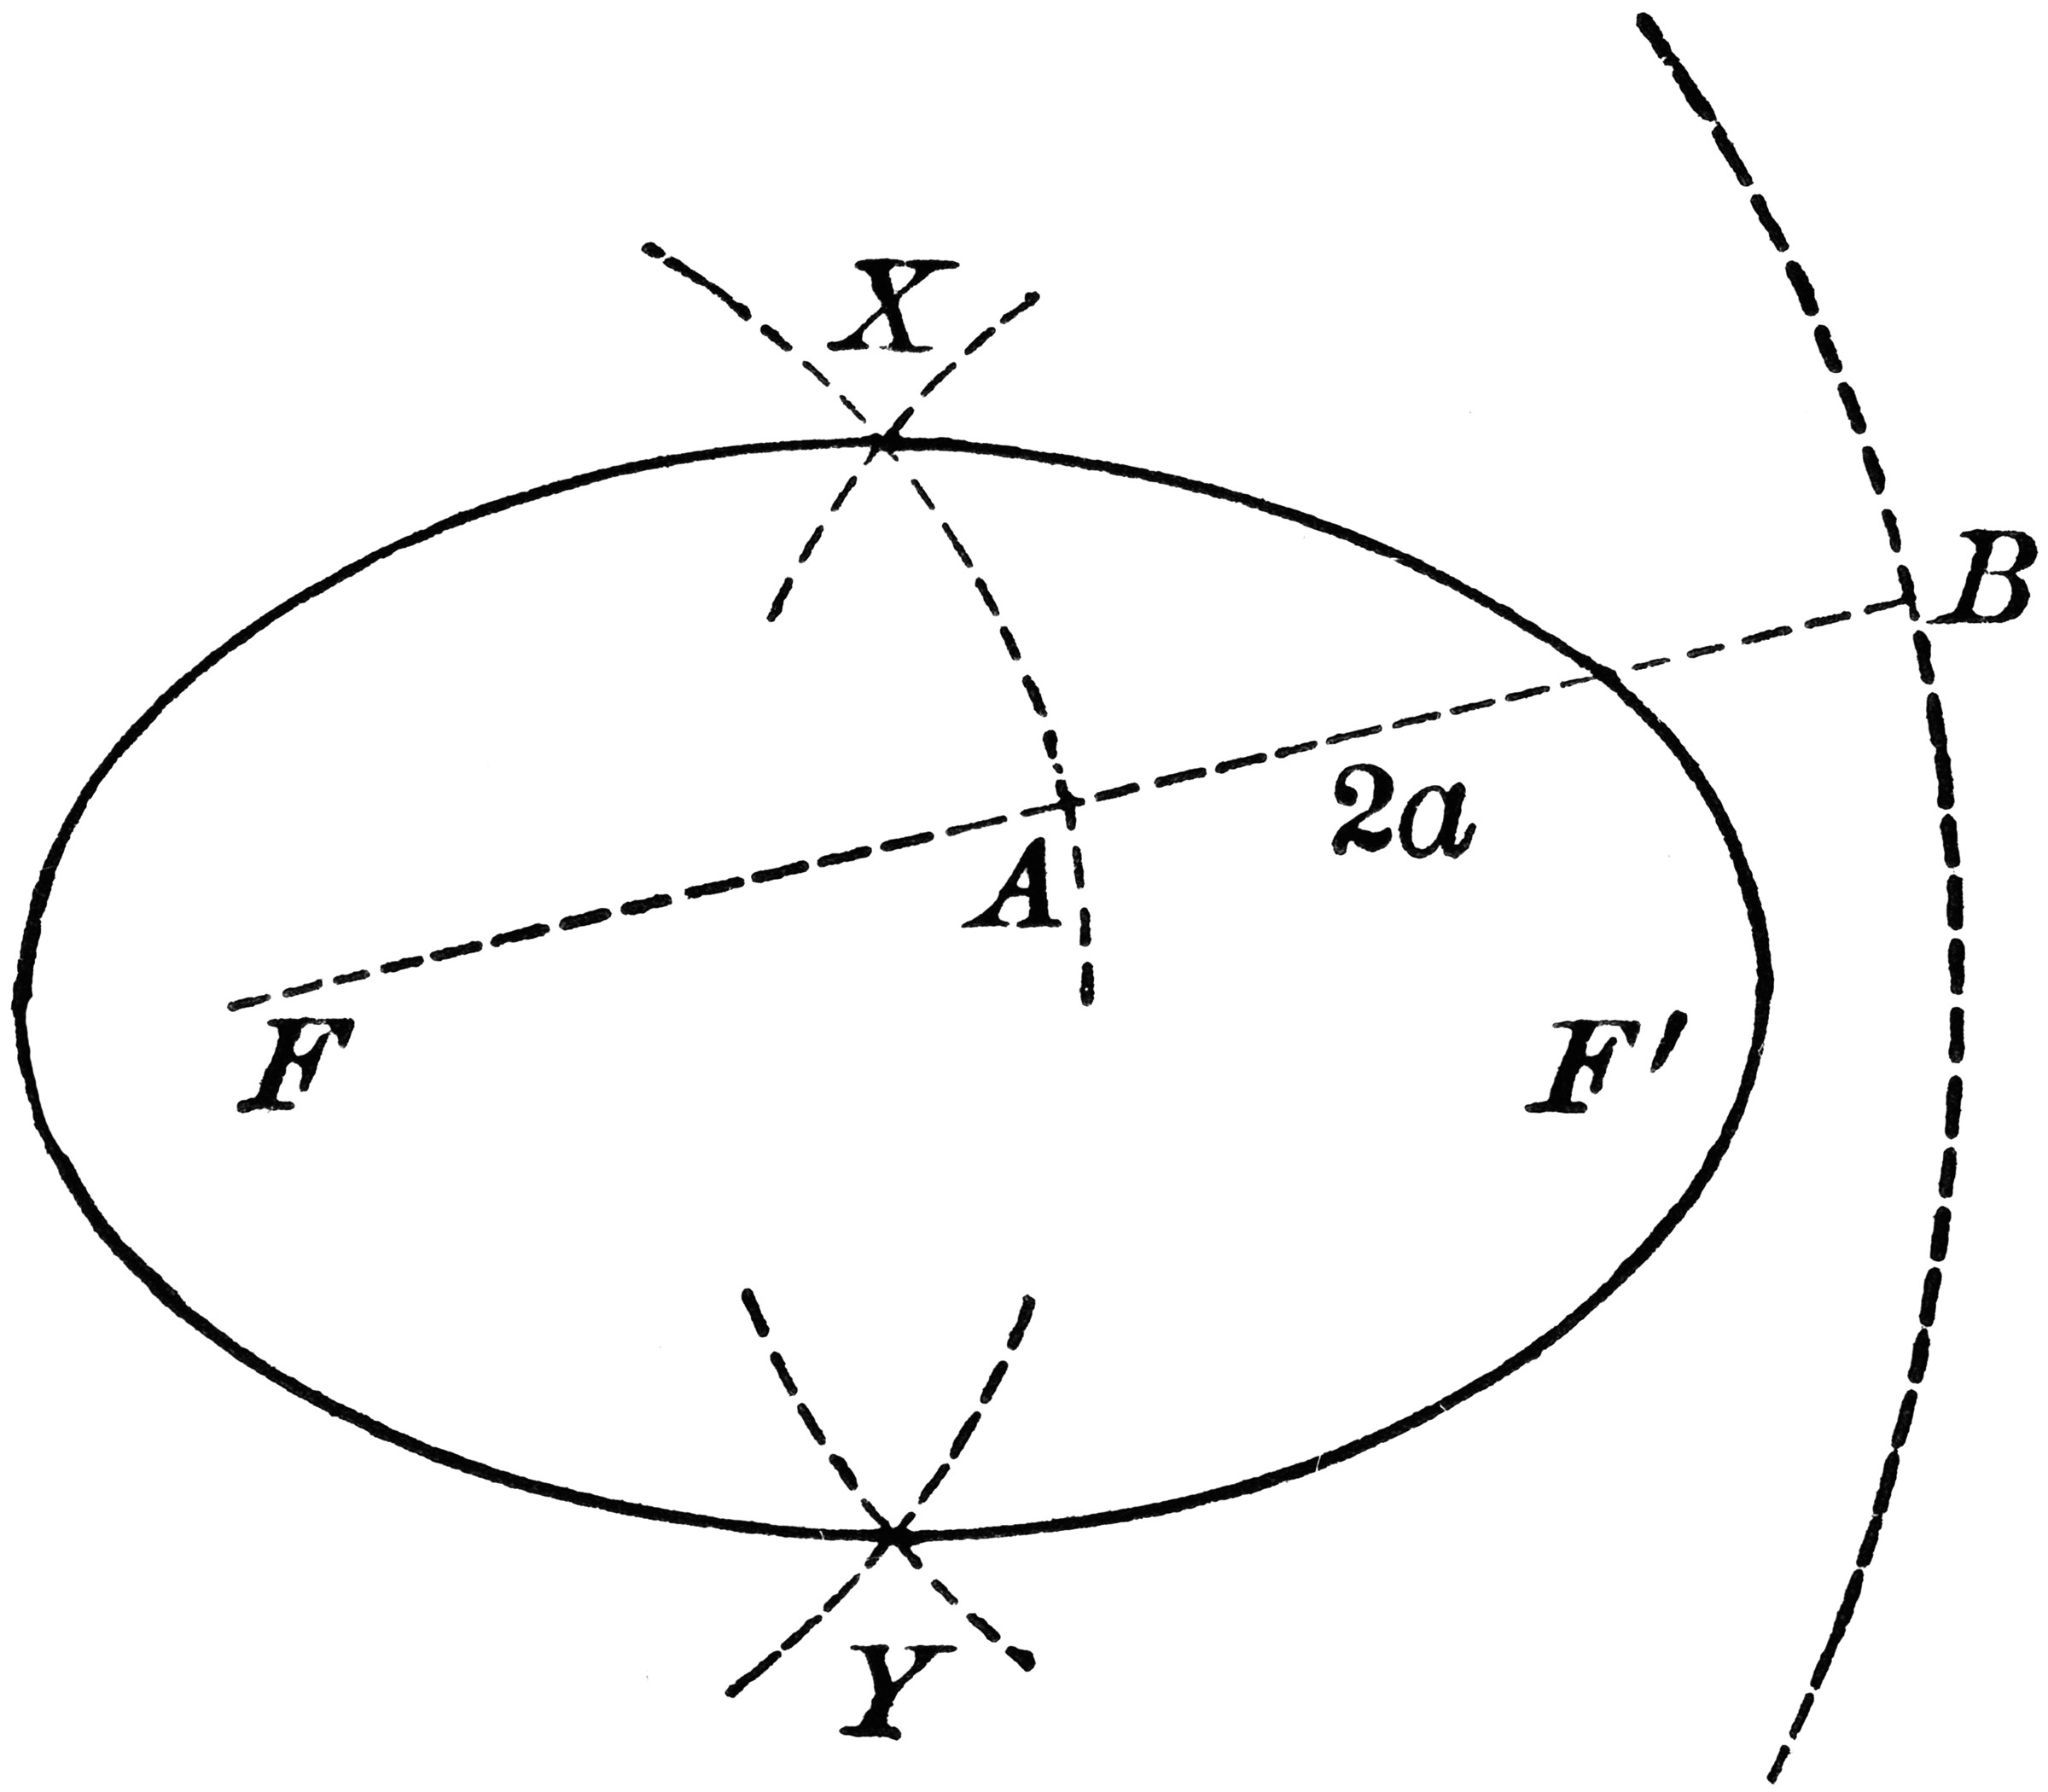 conic sections diagram house thermostat wiring construction of an ellipse clipart etc